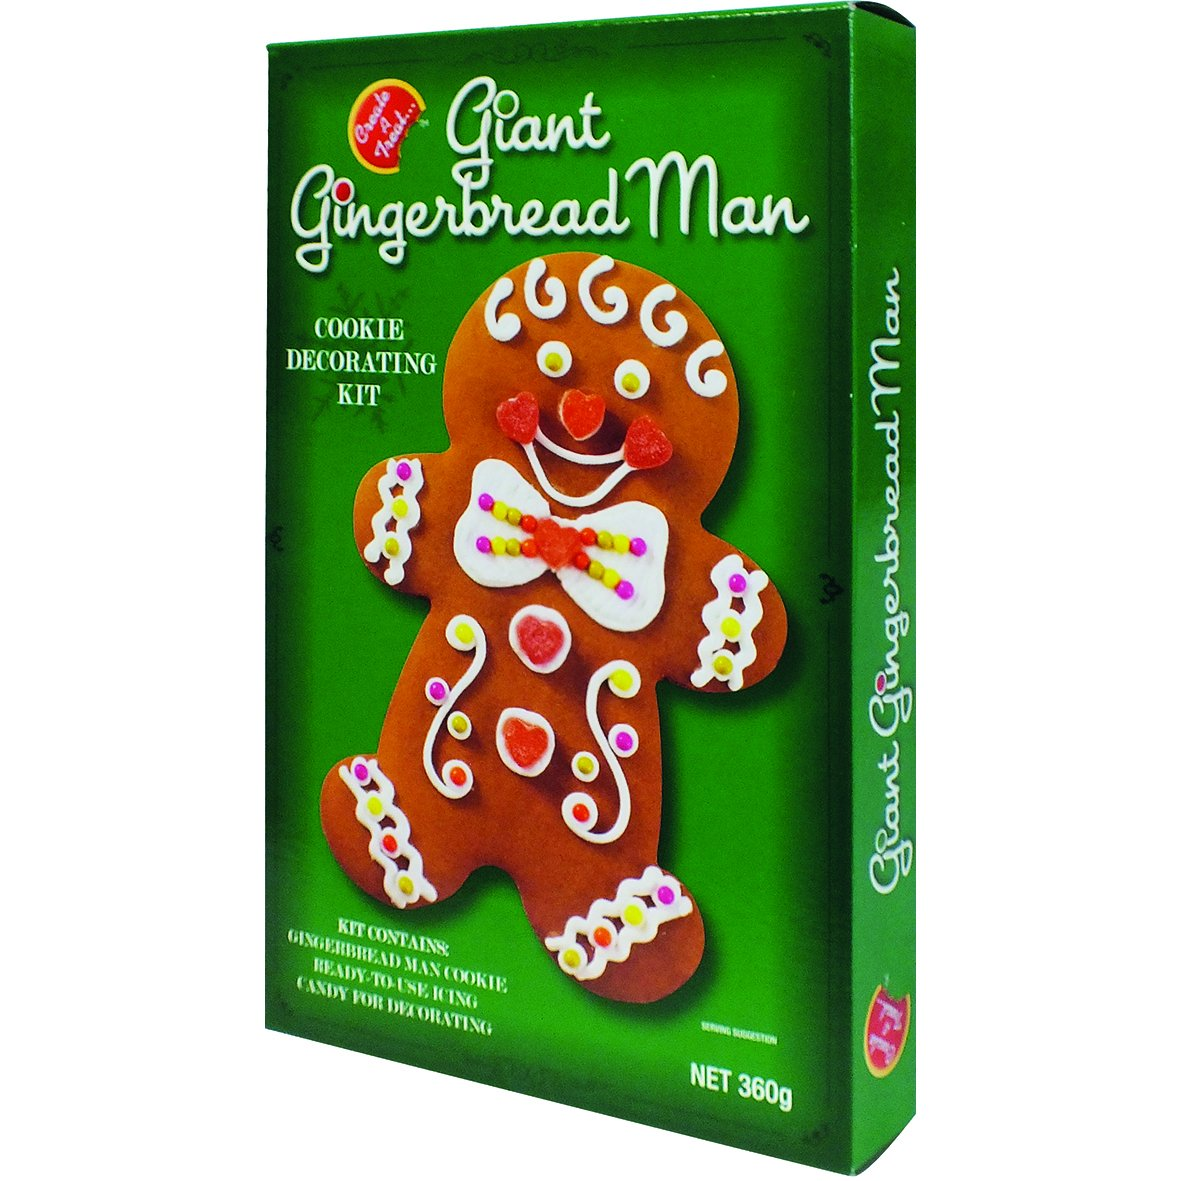 Create A Treat Giant Gingerbread Man Cookie Kit